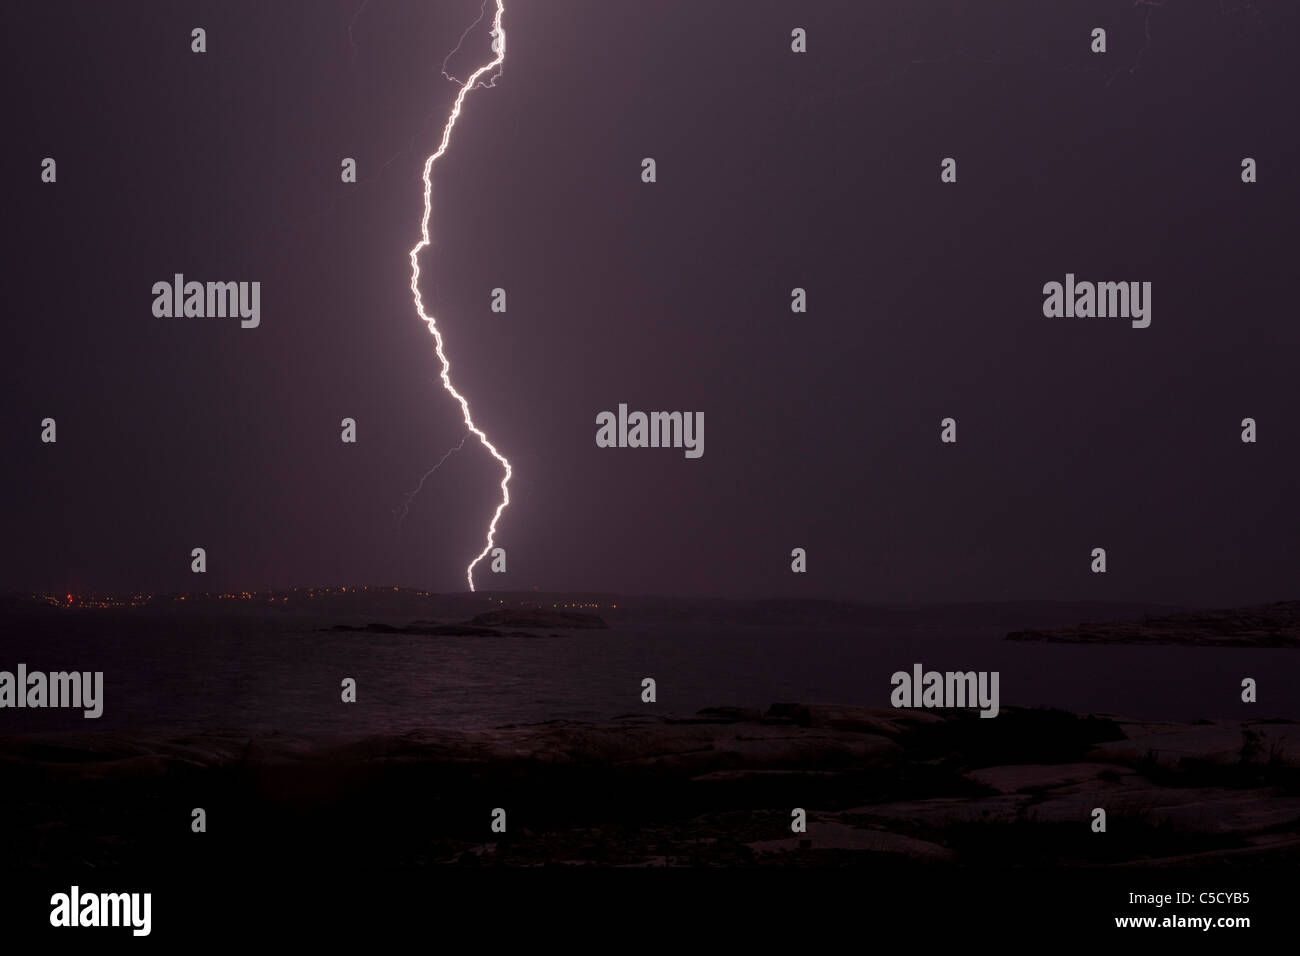 Scenic shot of lightning storm over the peaceful sea in the evening Stock Photo